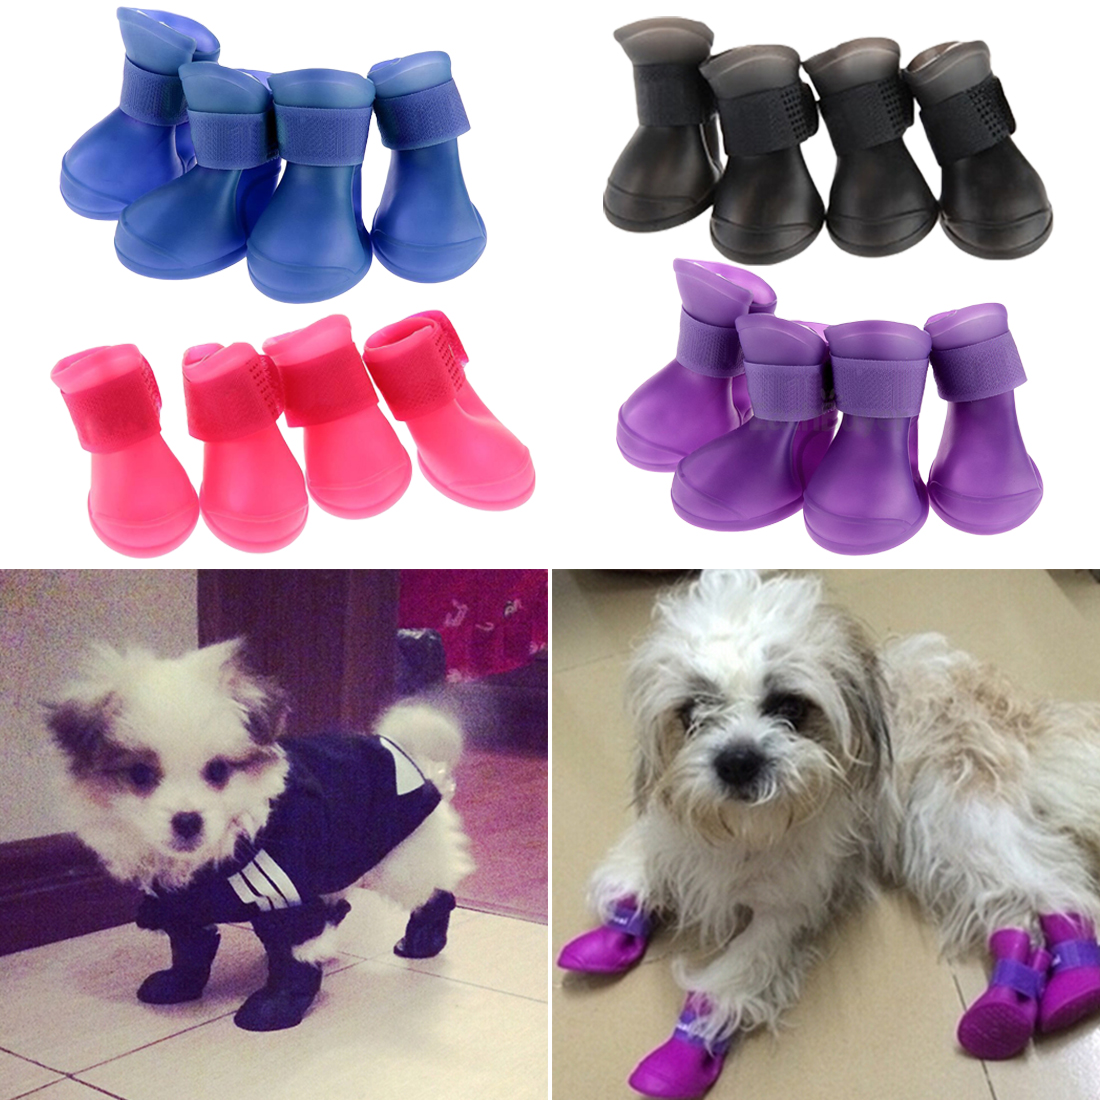 Pet Yorkie Dog Shoes Waterproof Rain Shoes For Small Dogs